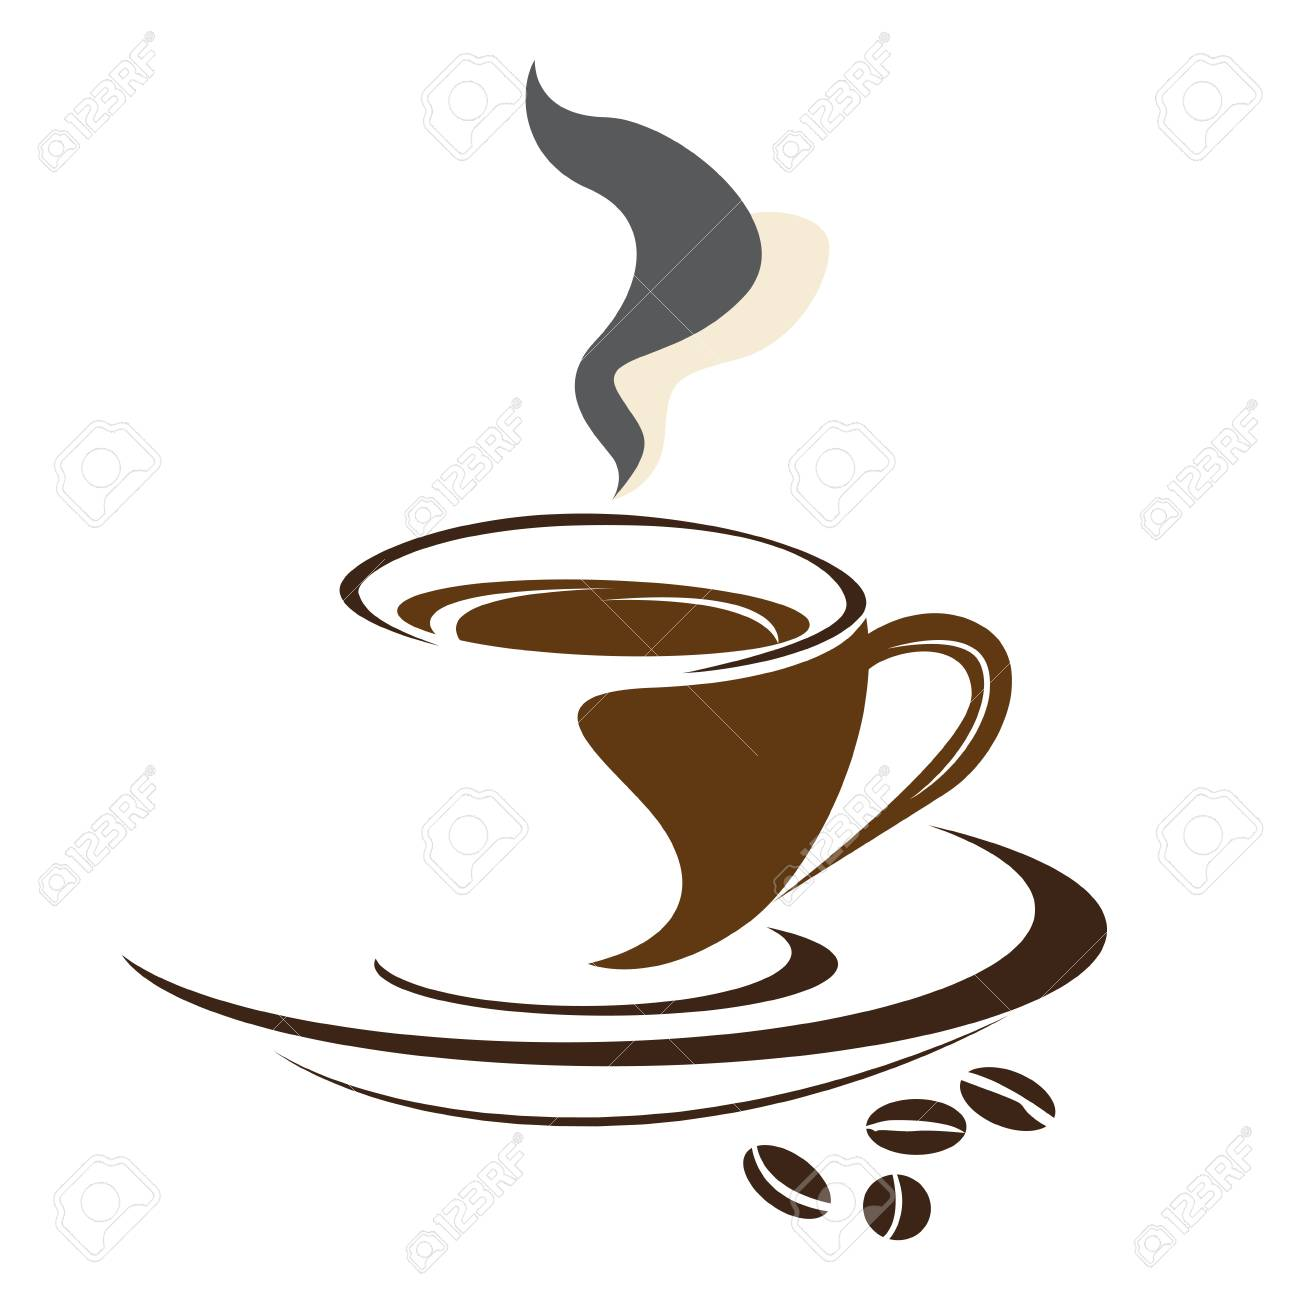 Isolated Abstract Coffee Mug Logo Vector Illustration Royalty Free Cliparts Vectors And Stock Illustration Image 79953616